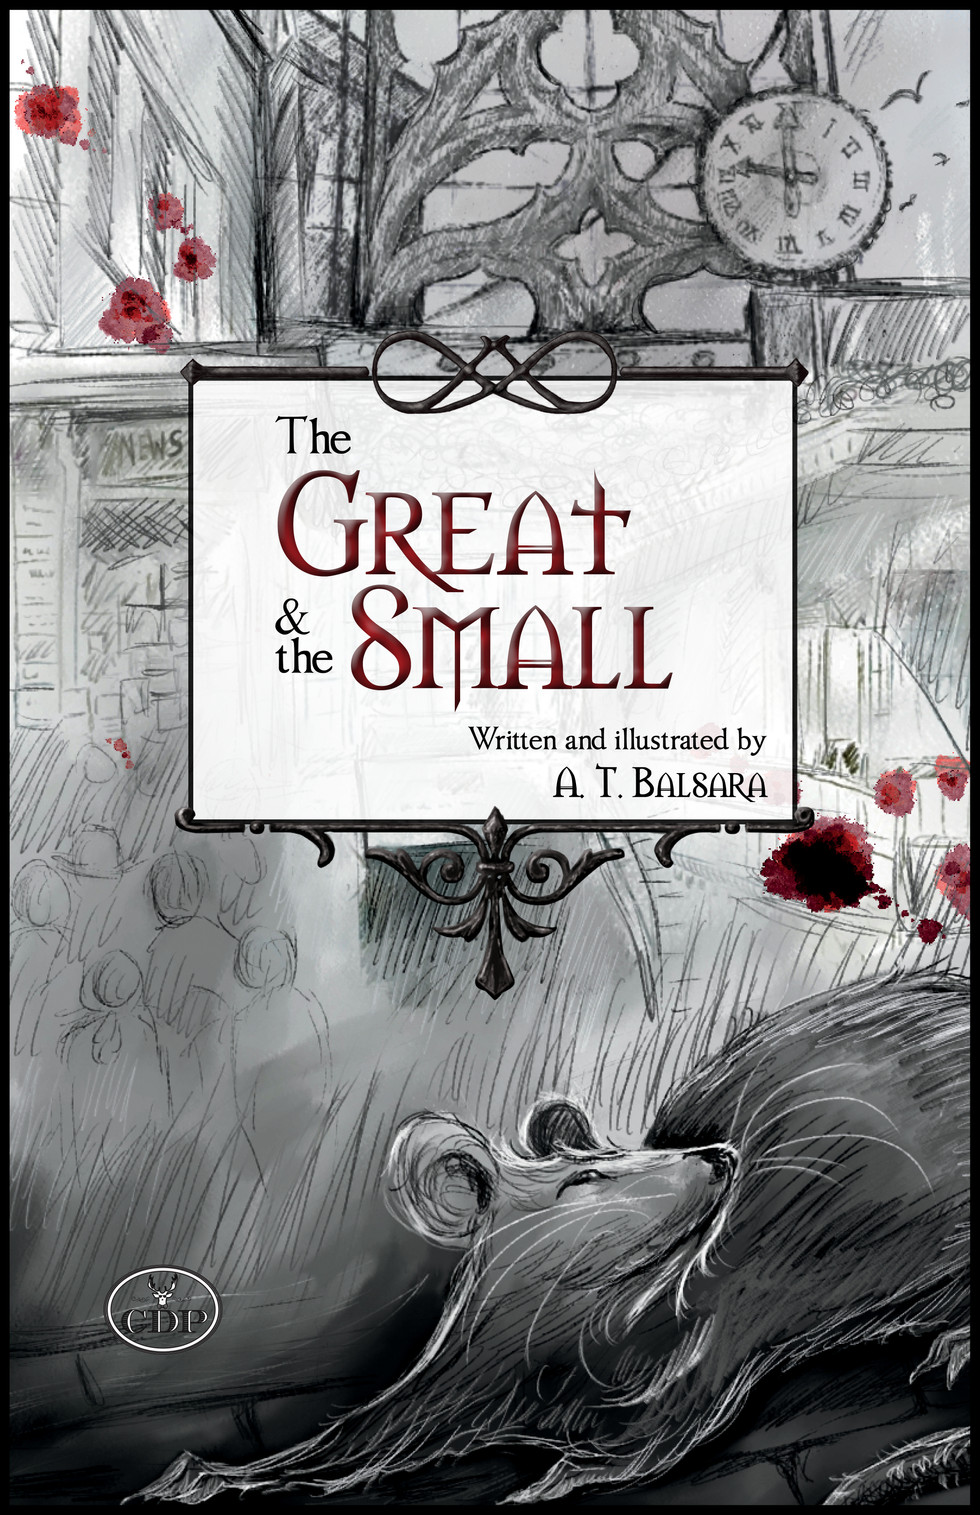 The Great & the Small Wins Silver at Moonbeam Awards